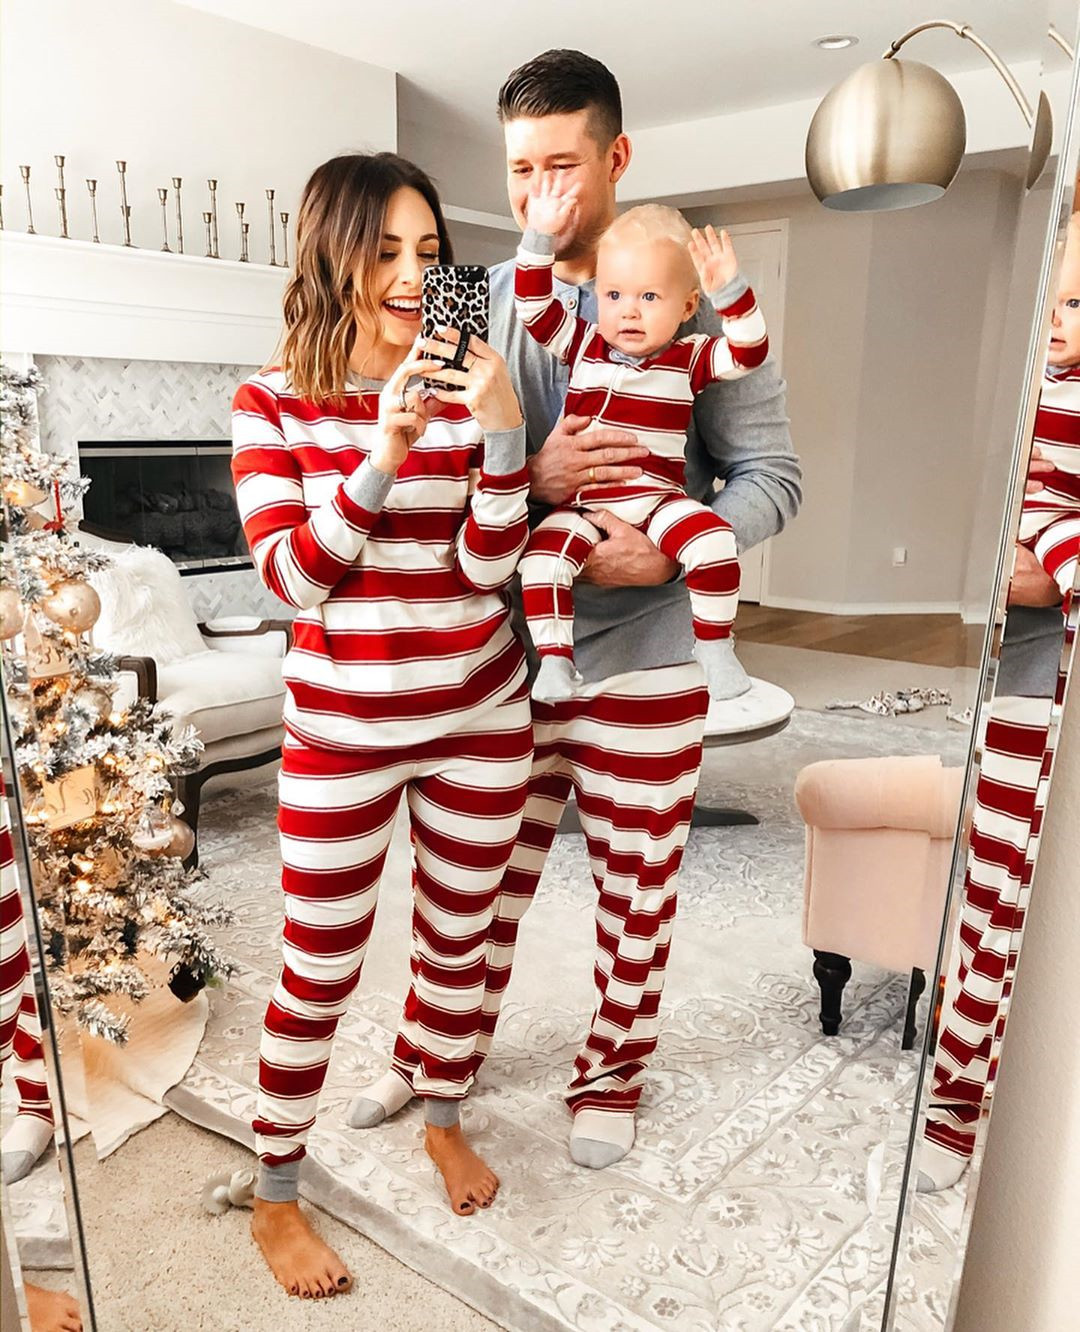 Family Christmas Pajamas 2019,family christmas pajamas 2019,funny family christmas pajamas,best family christmas pajamas,best family christmas pajamas 2019